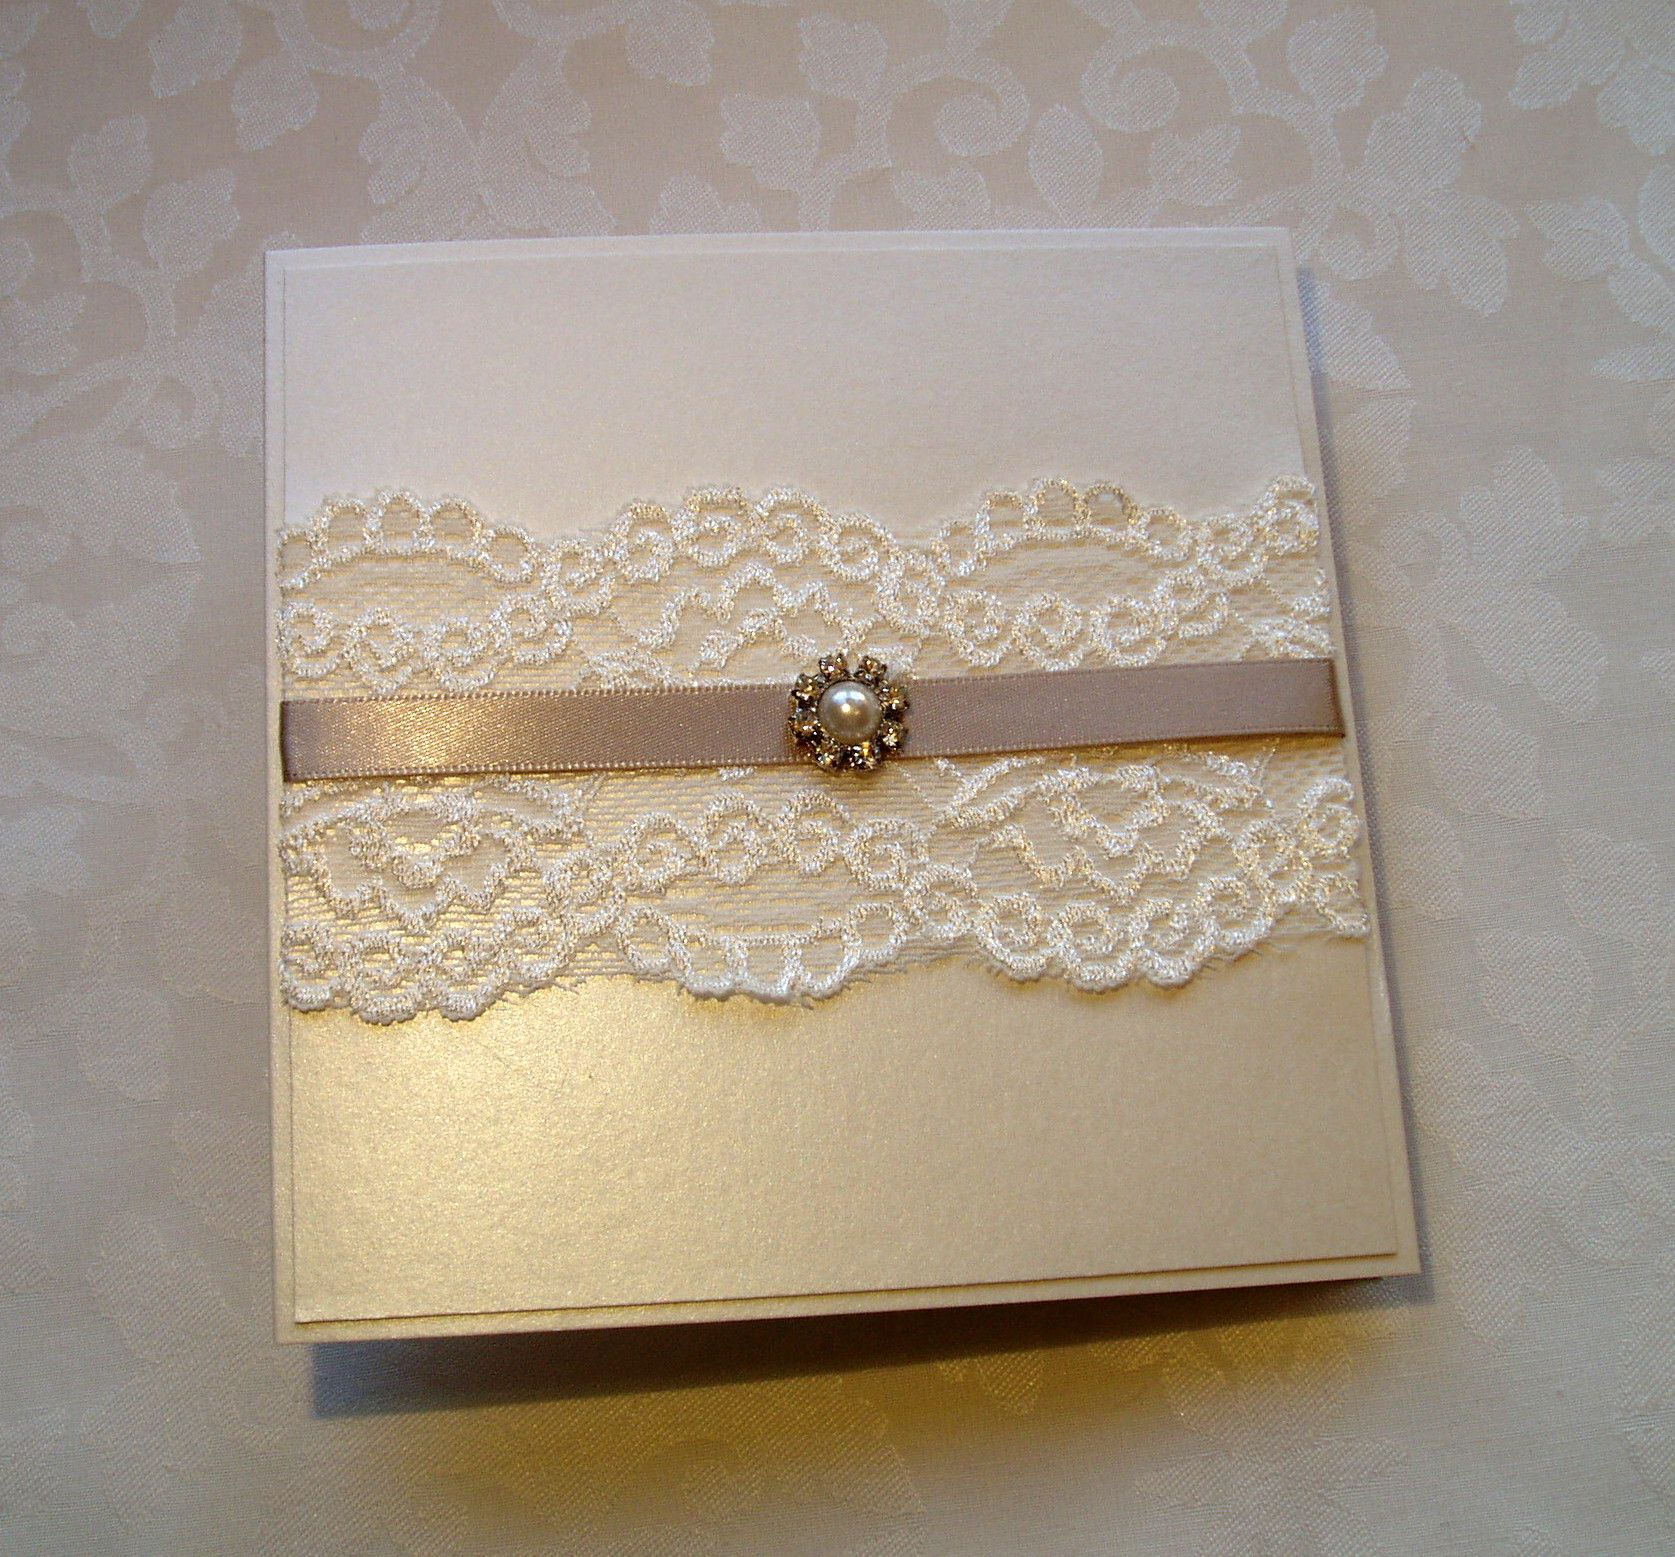 Lace wedding invitation - from my \'Coffee with Cream\' collection ...